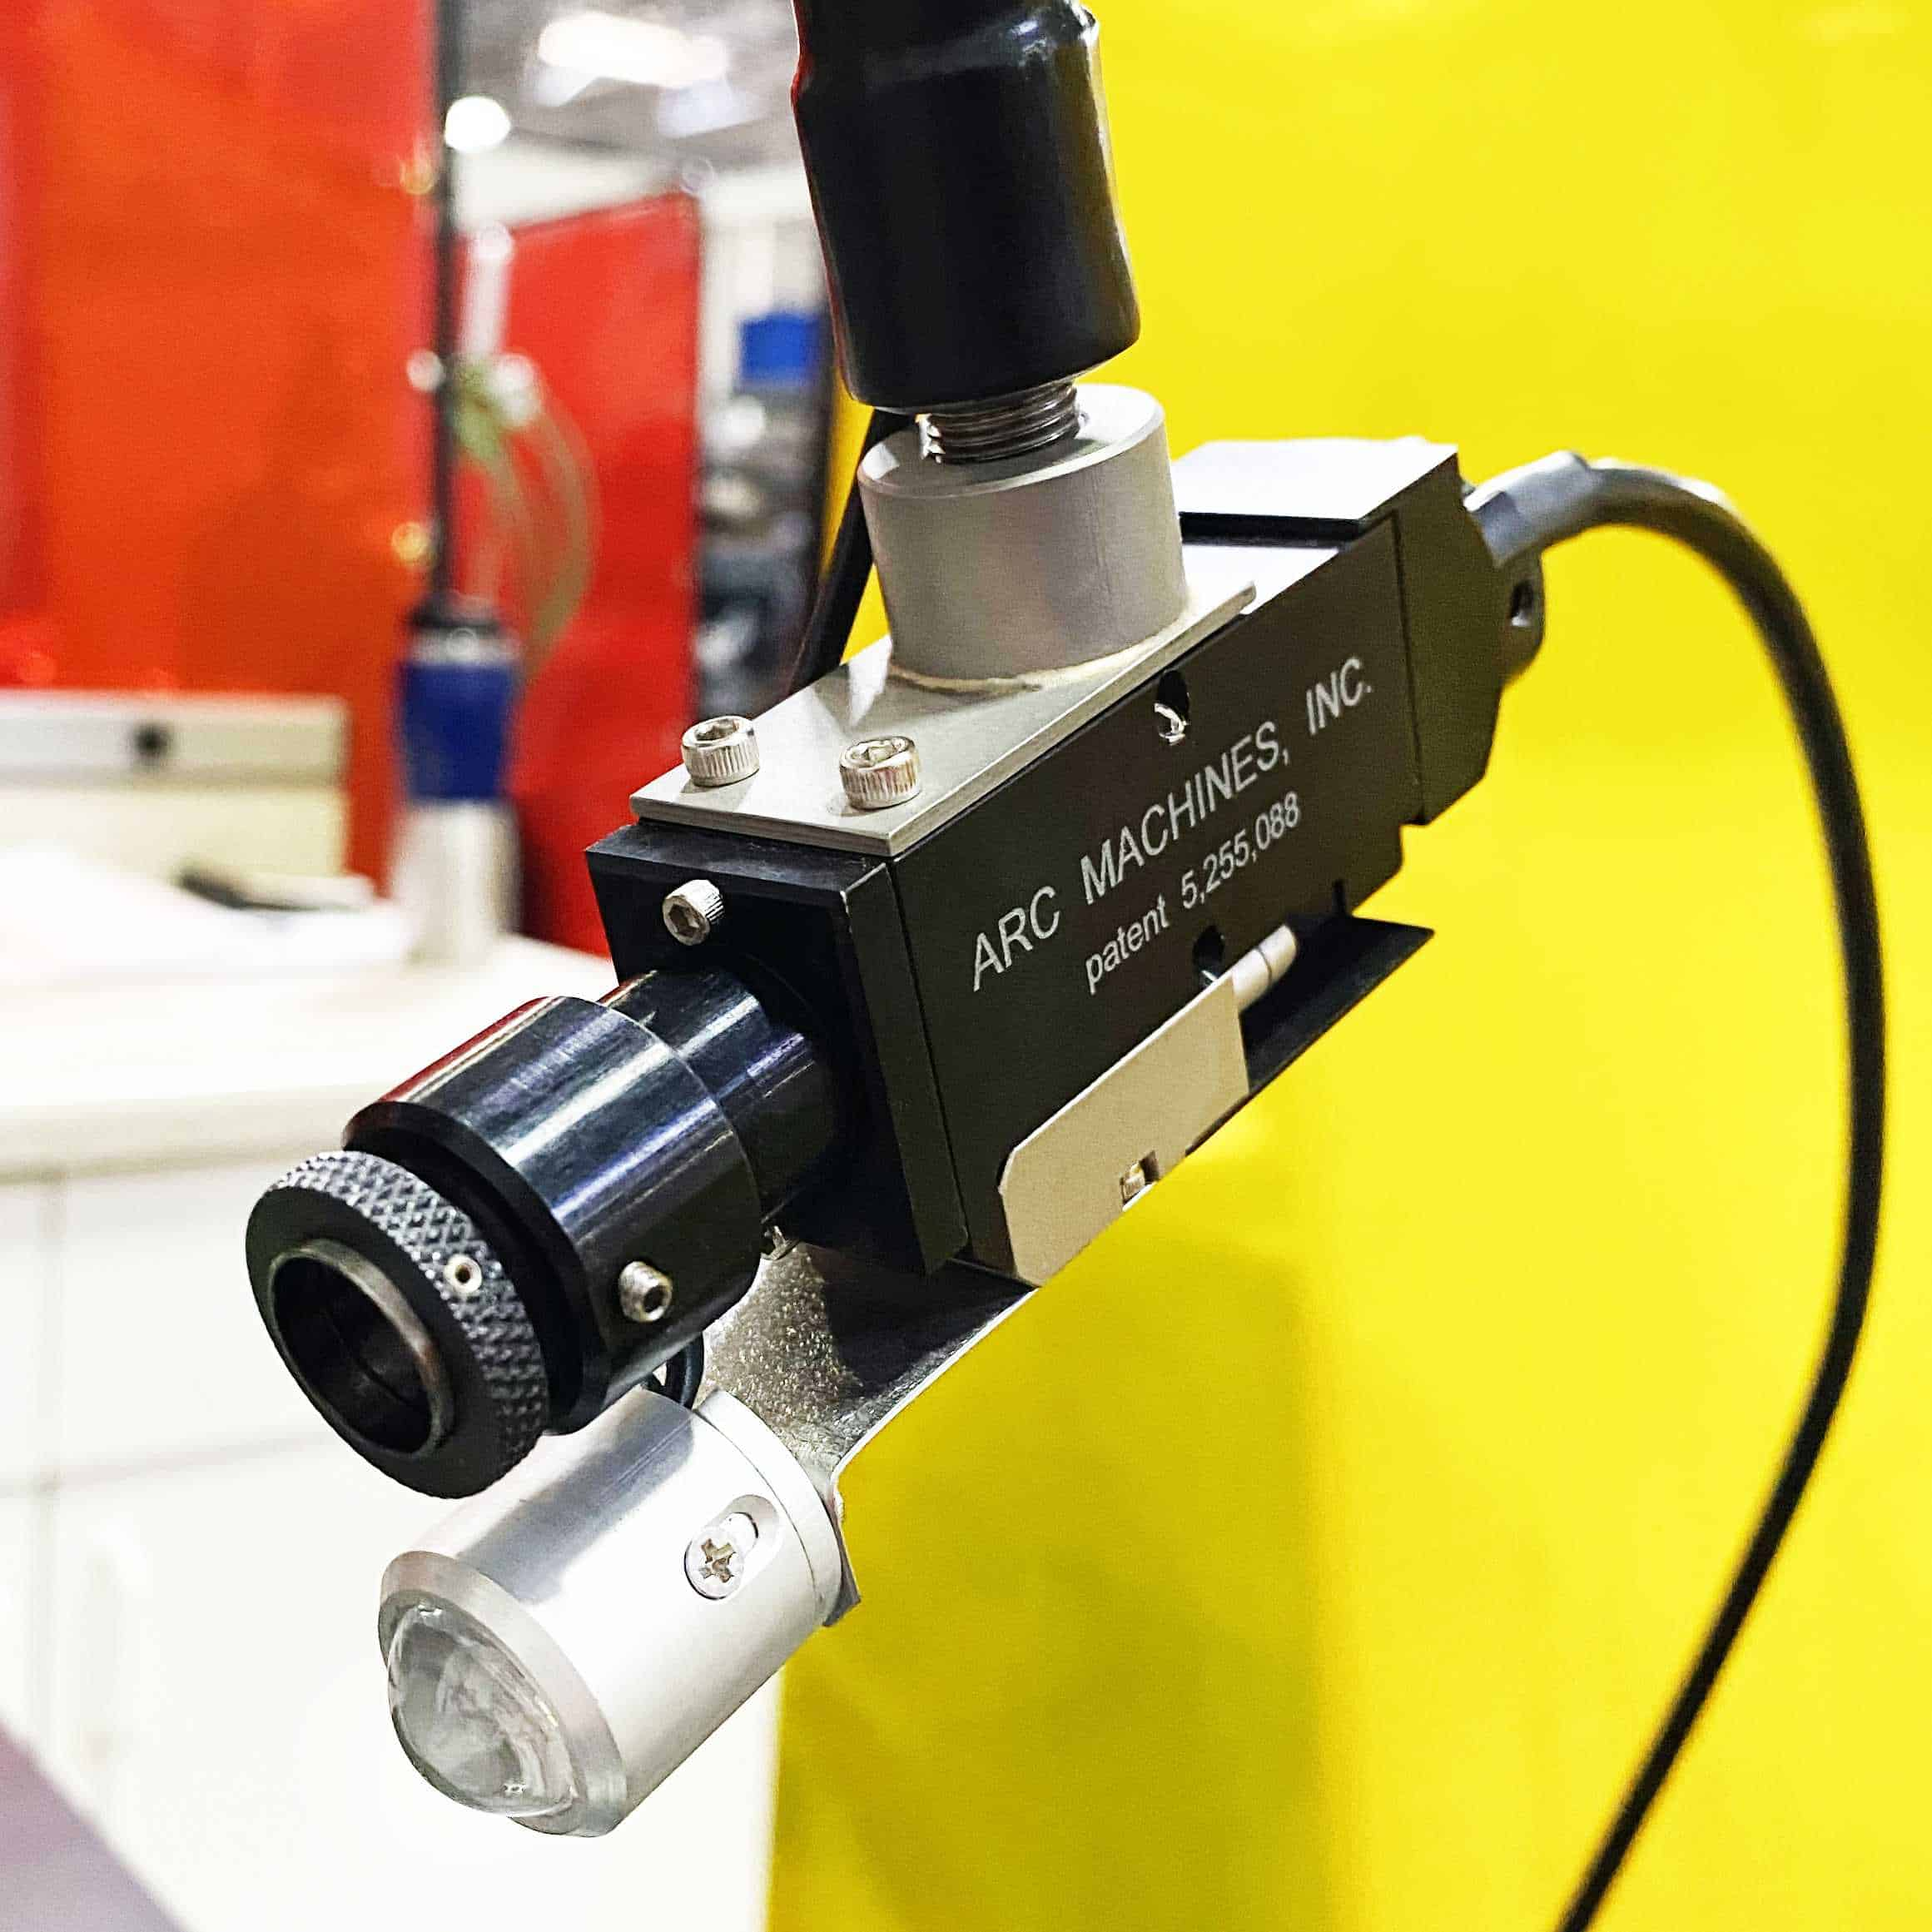 Why Use an Arc Welding Monitoring System: Benefits of a Quality Vision System